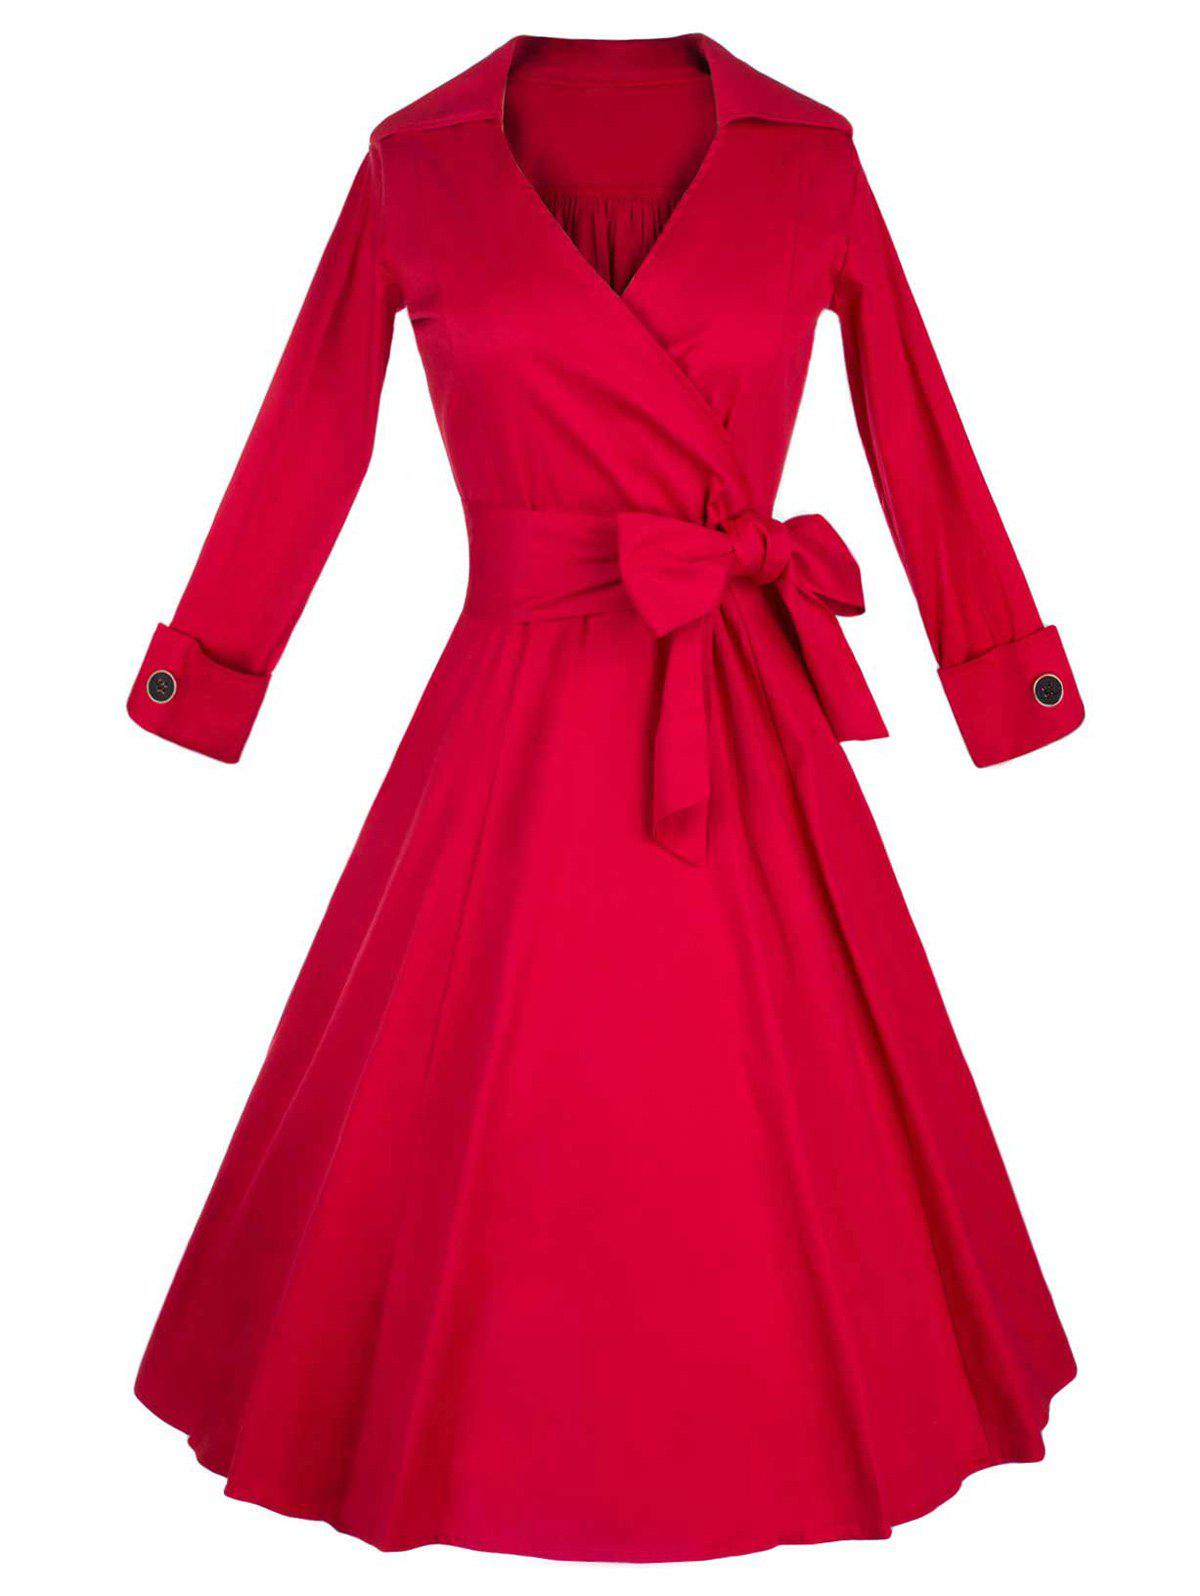 Long Sleeve Wrap Swing Midi Vintage DressWOMEN<br><br>Size: M; Color: RED; Style: Vintage; Material: Cotton Blend; Silhouette: A-Line; Dresses Length: Mid-Calf; Neckline: V-Neck; Sleeve Length: Long Sleeves; Pattern Type: Solid; With Belt: No; Season: Fall,Spring,Winter; Weight: 0.550kg; Package Contents: 1 x Dress;